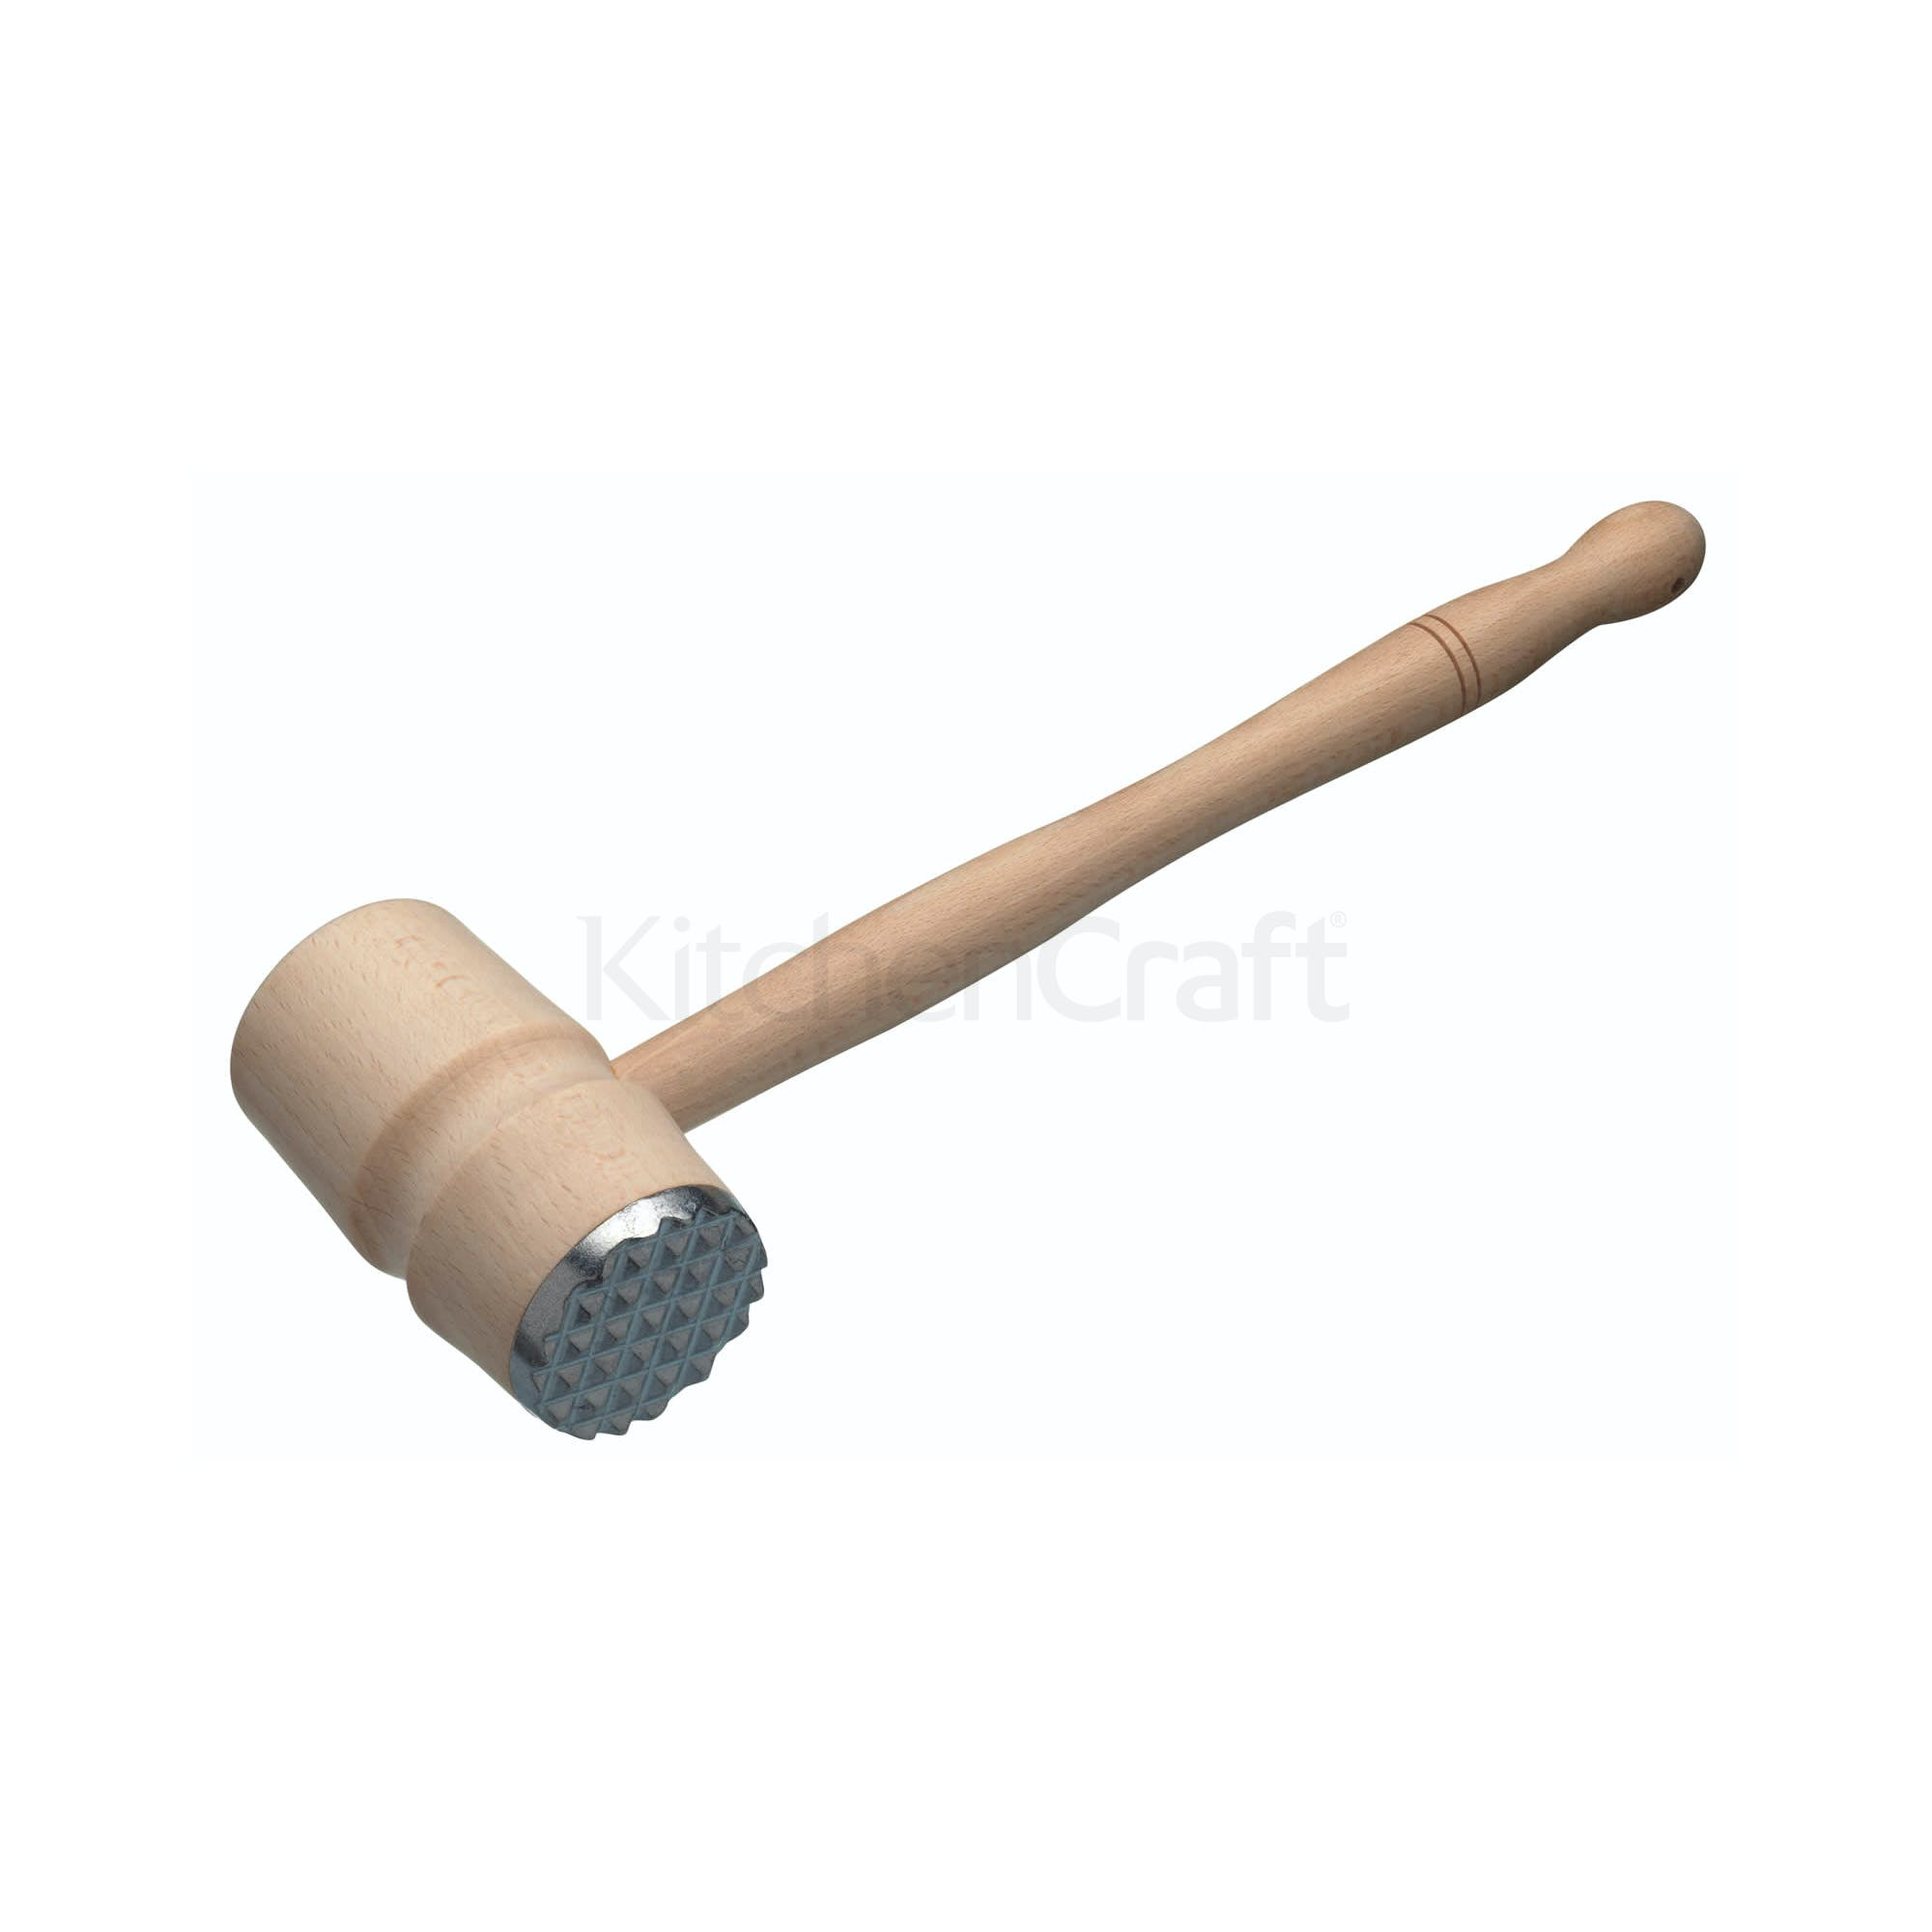 Kitchencraft Beech Wood Meat Hammer With Metal End All Kitchen